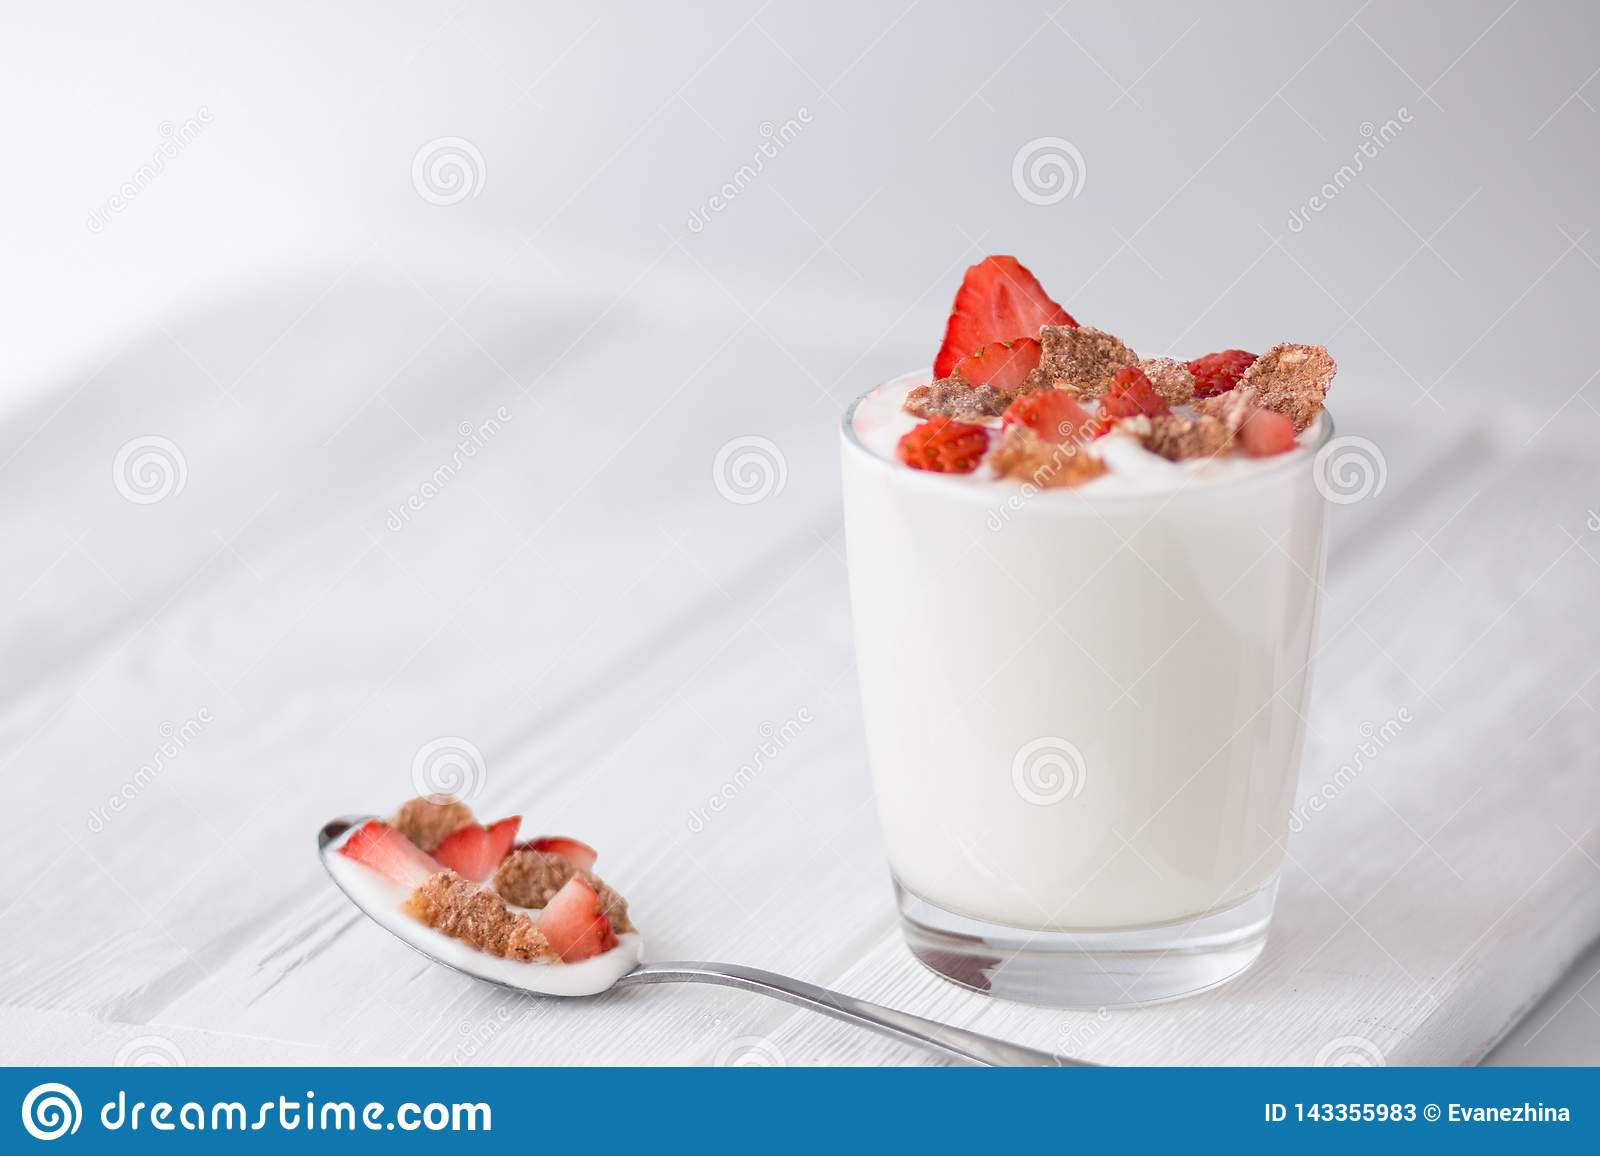 Natural yogurt  with strawberry and multigrain flakes on a white wooden table. Front view